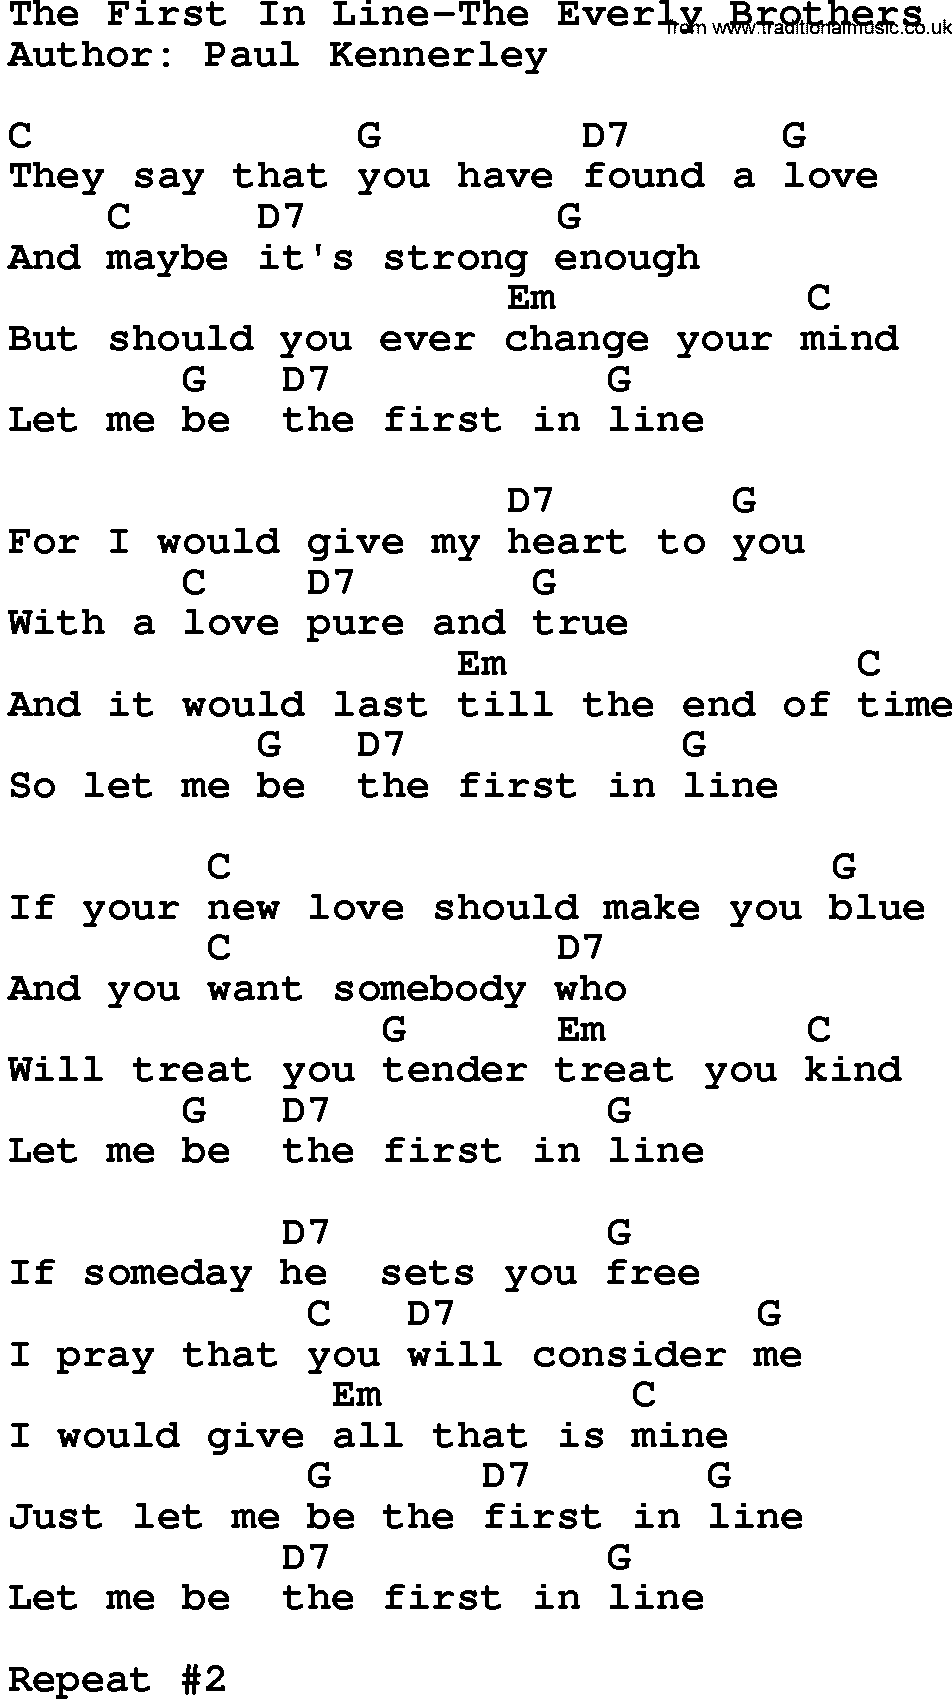 Country Music The First In Line The Everly Brothers Lyrics And Chords Have you ever felt forgotten in the middle of nowhere? traditional music library